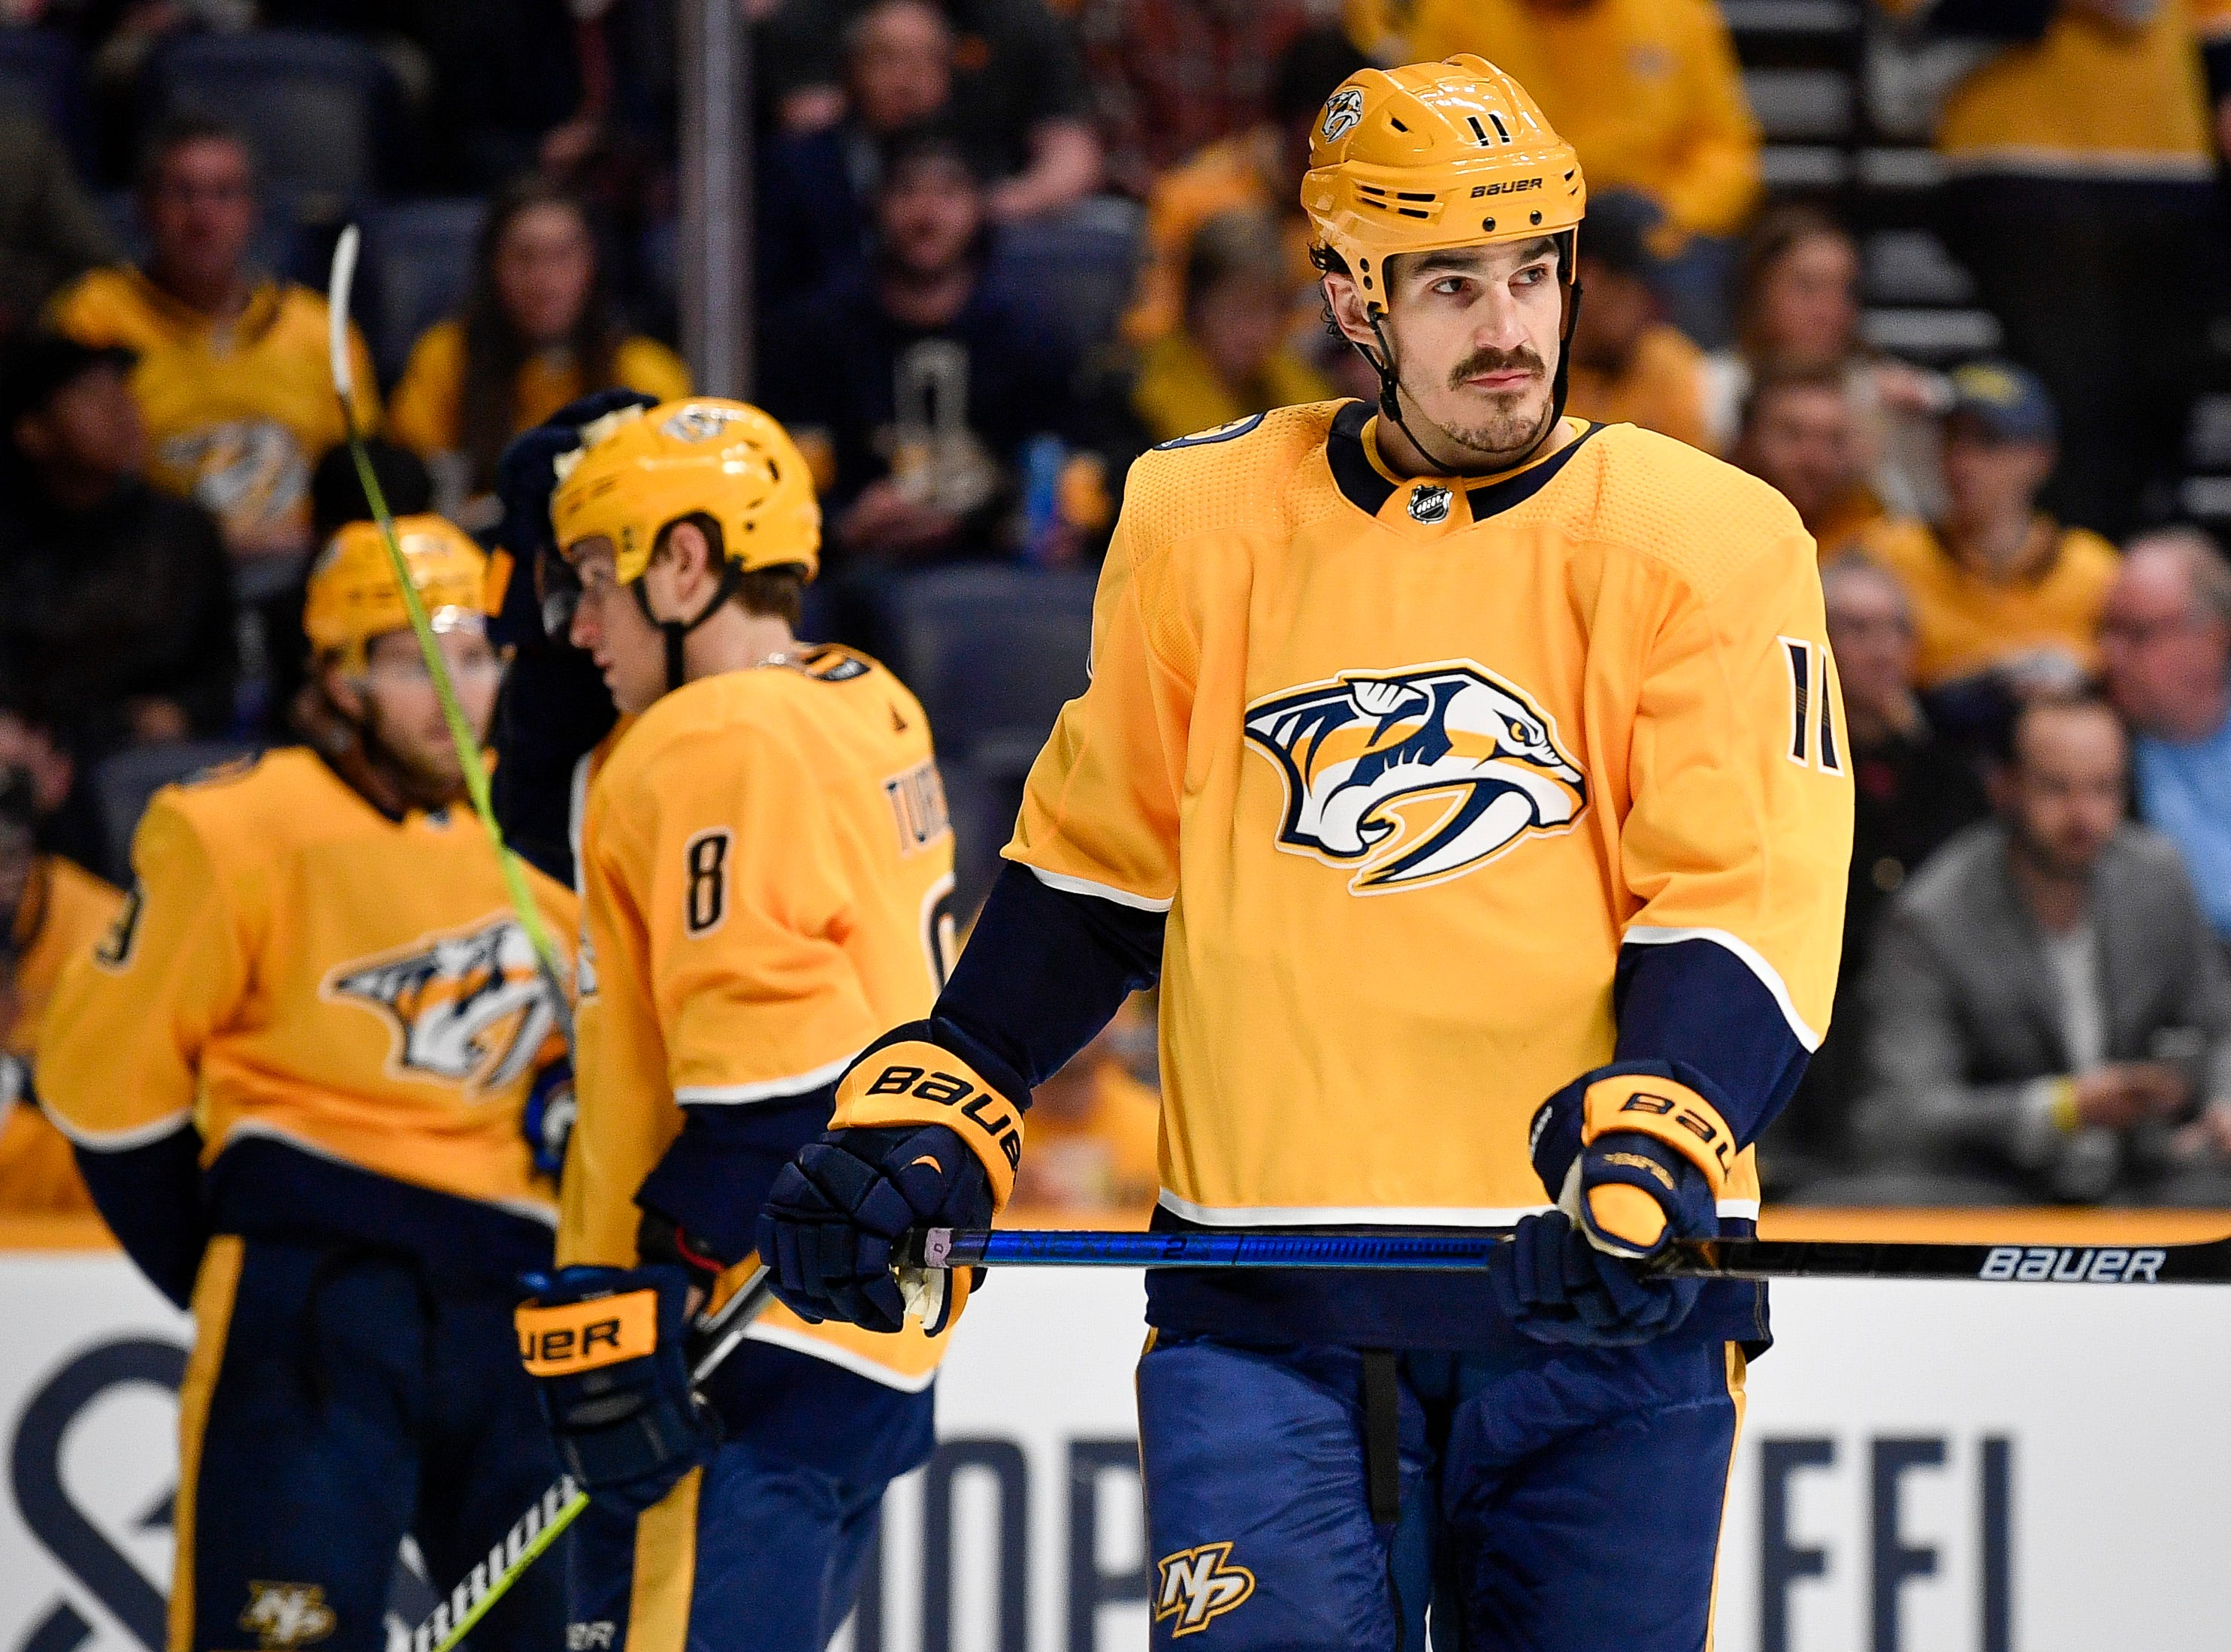 Nashville Predators center Brian Boyle (11) gets into position against the Dallas Stars during the first period at Bridgestone Arena in Nashville, Tenn., Thursday, Feb. 7, 2019.